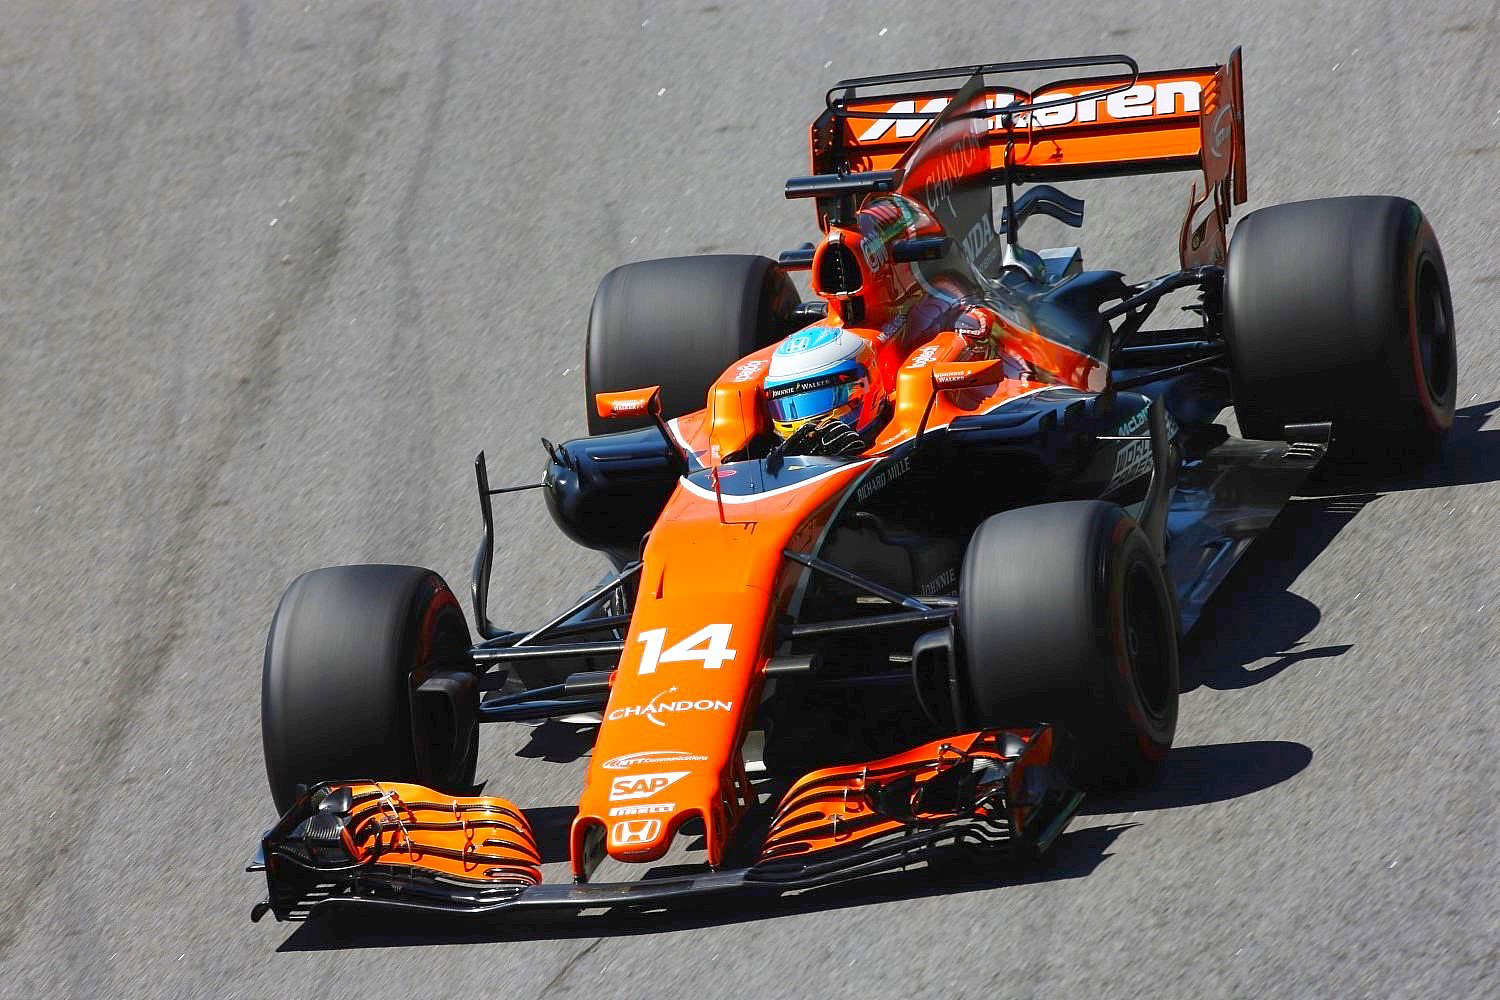 If Alonso would stop running so much downforce and drag in his McLaren maybe it would be faster down the straights